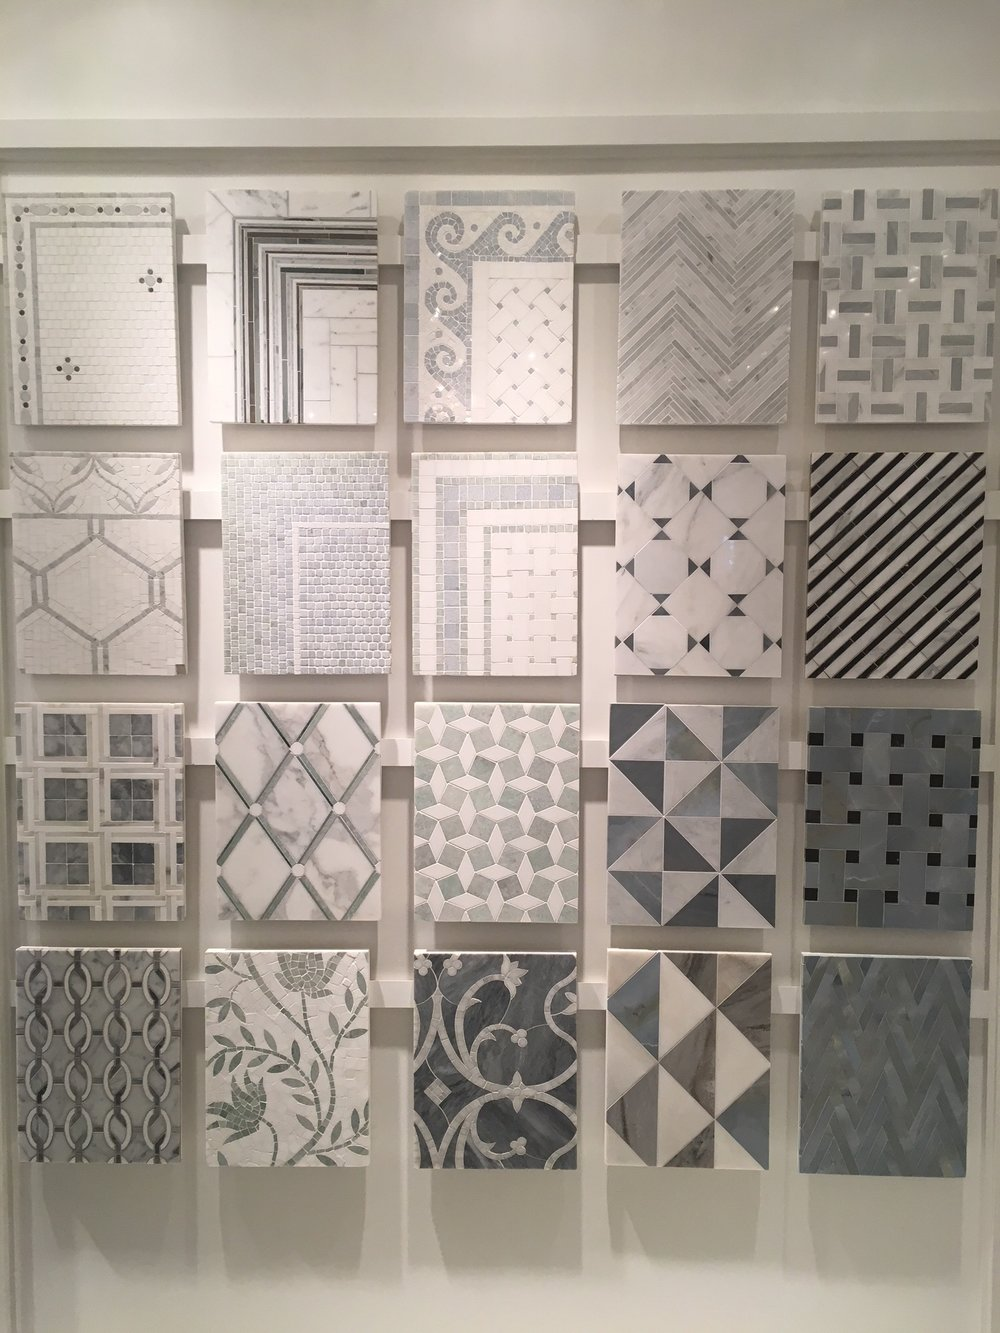 Looked at their great tile collection too. Love this display!